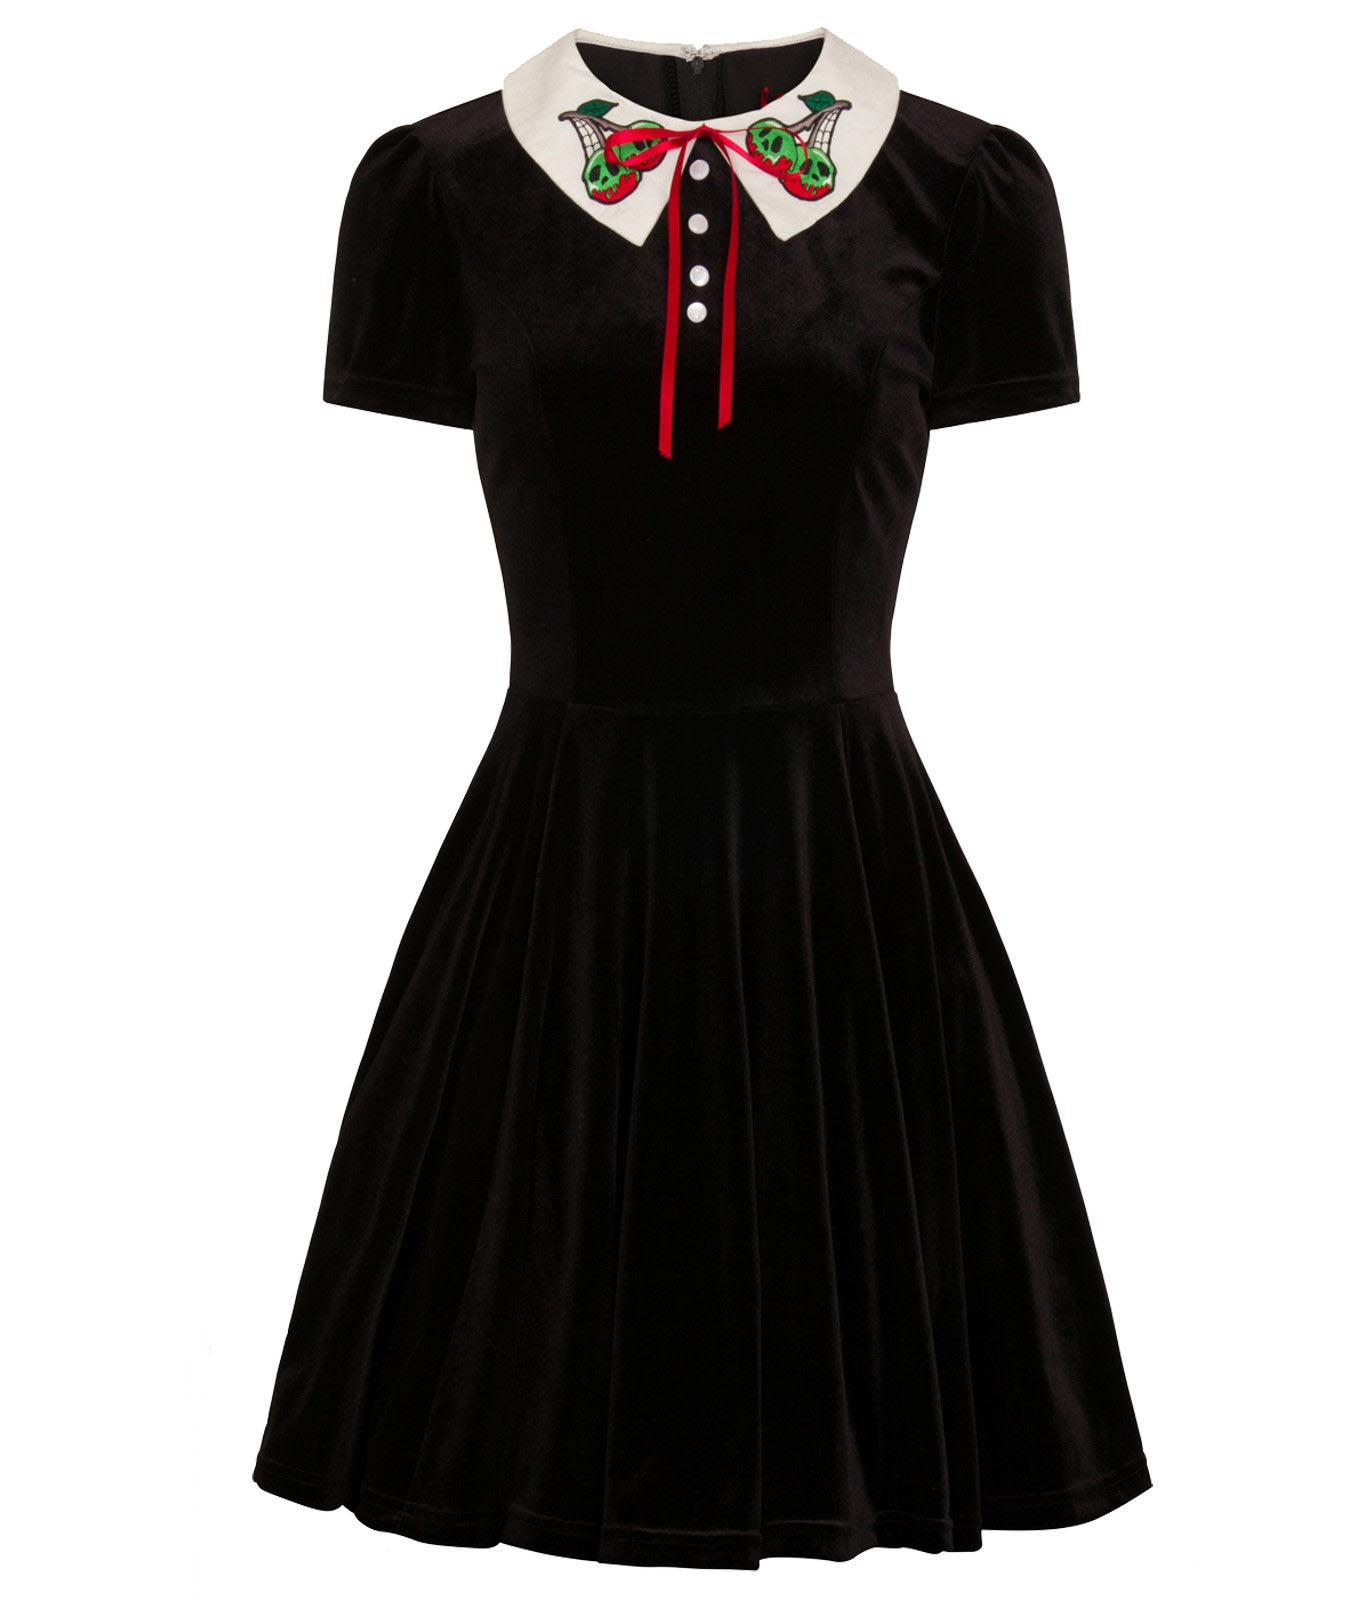 Hell-Bunny-Goth-Mini-Skater-Dress-NIGHTSHADE-Poison-Cherry-Black-Velvet-All-Size thumbnail 3